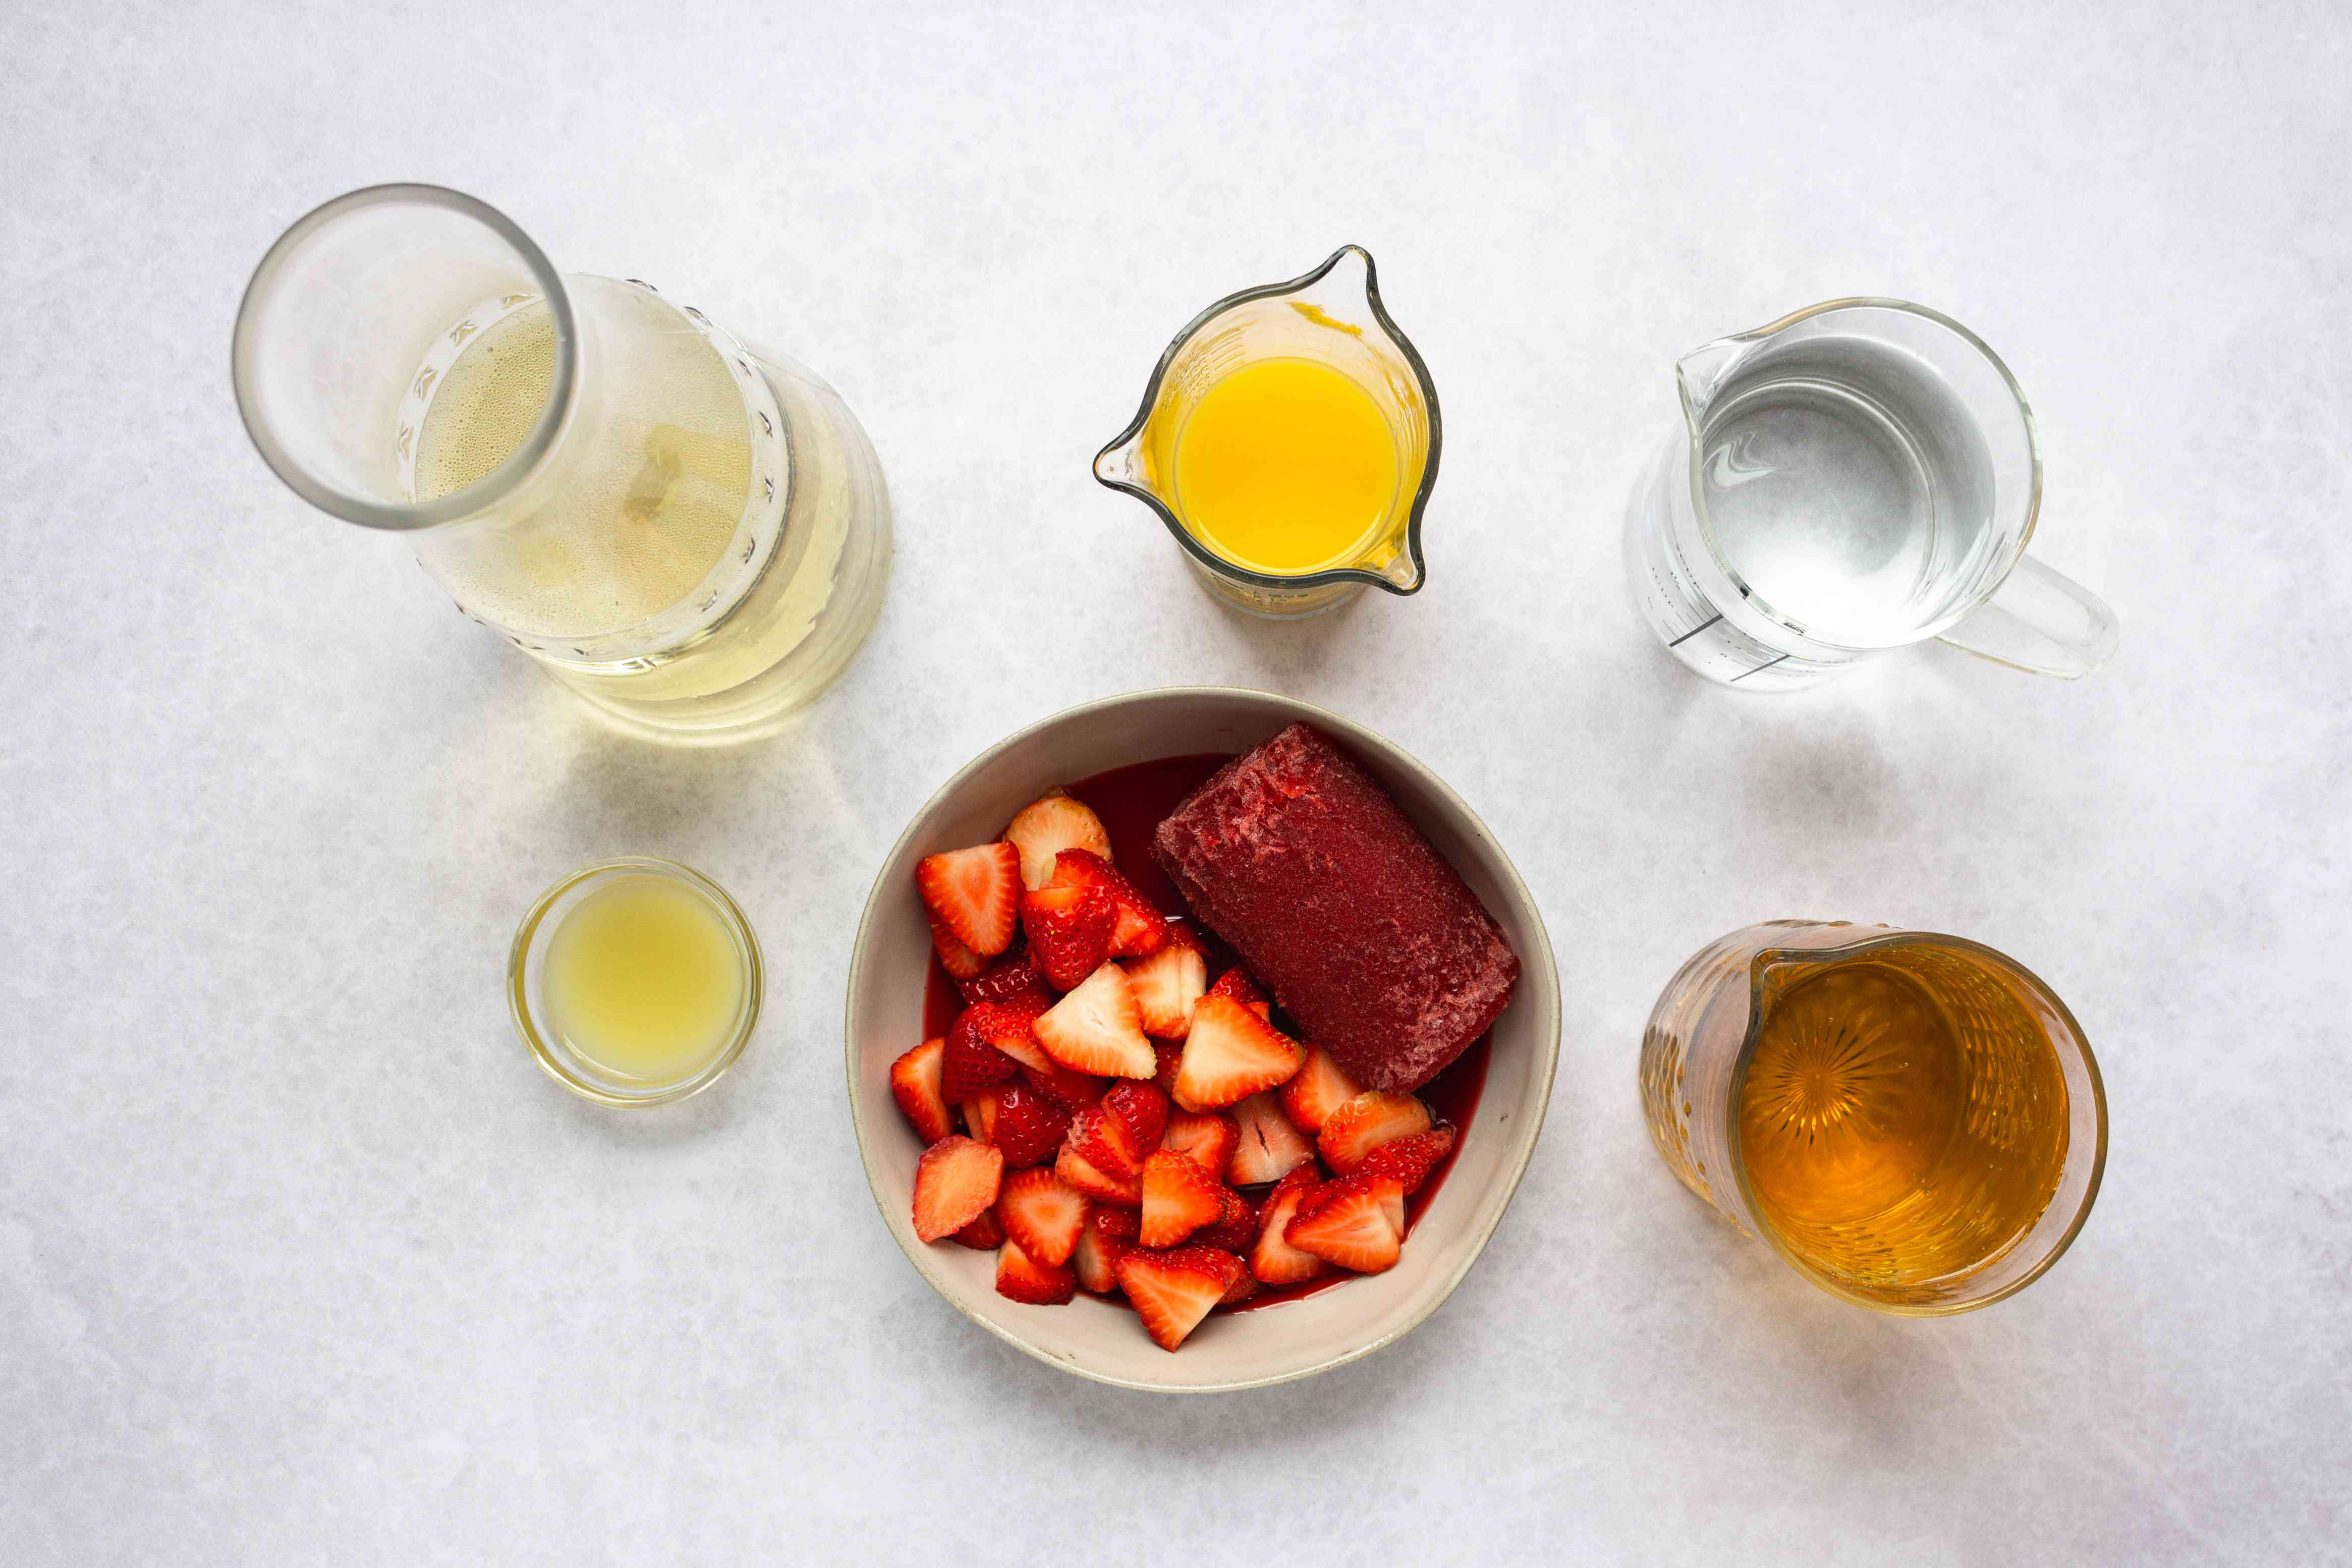 Strawberry Champagne Punch ingredients